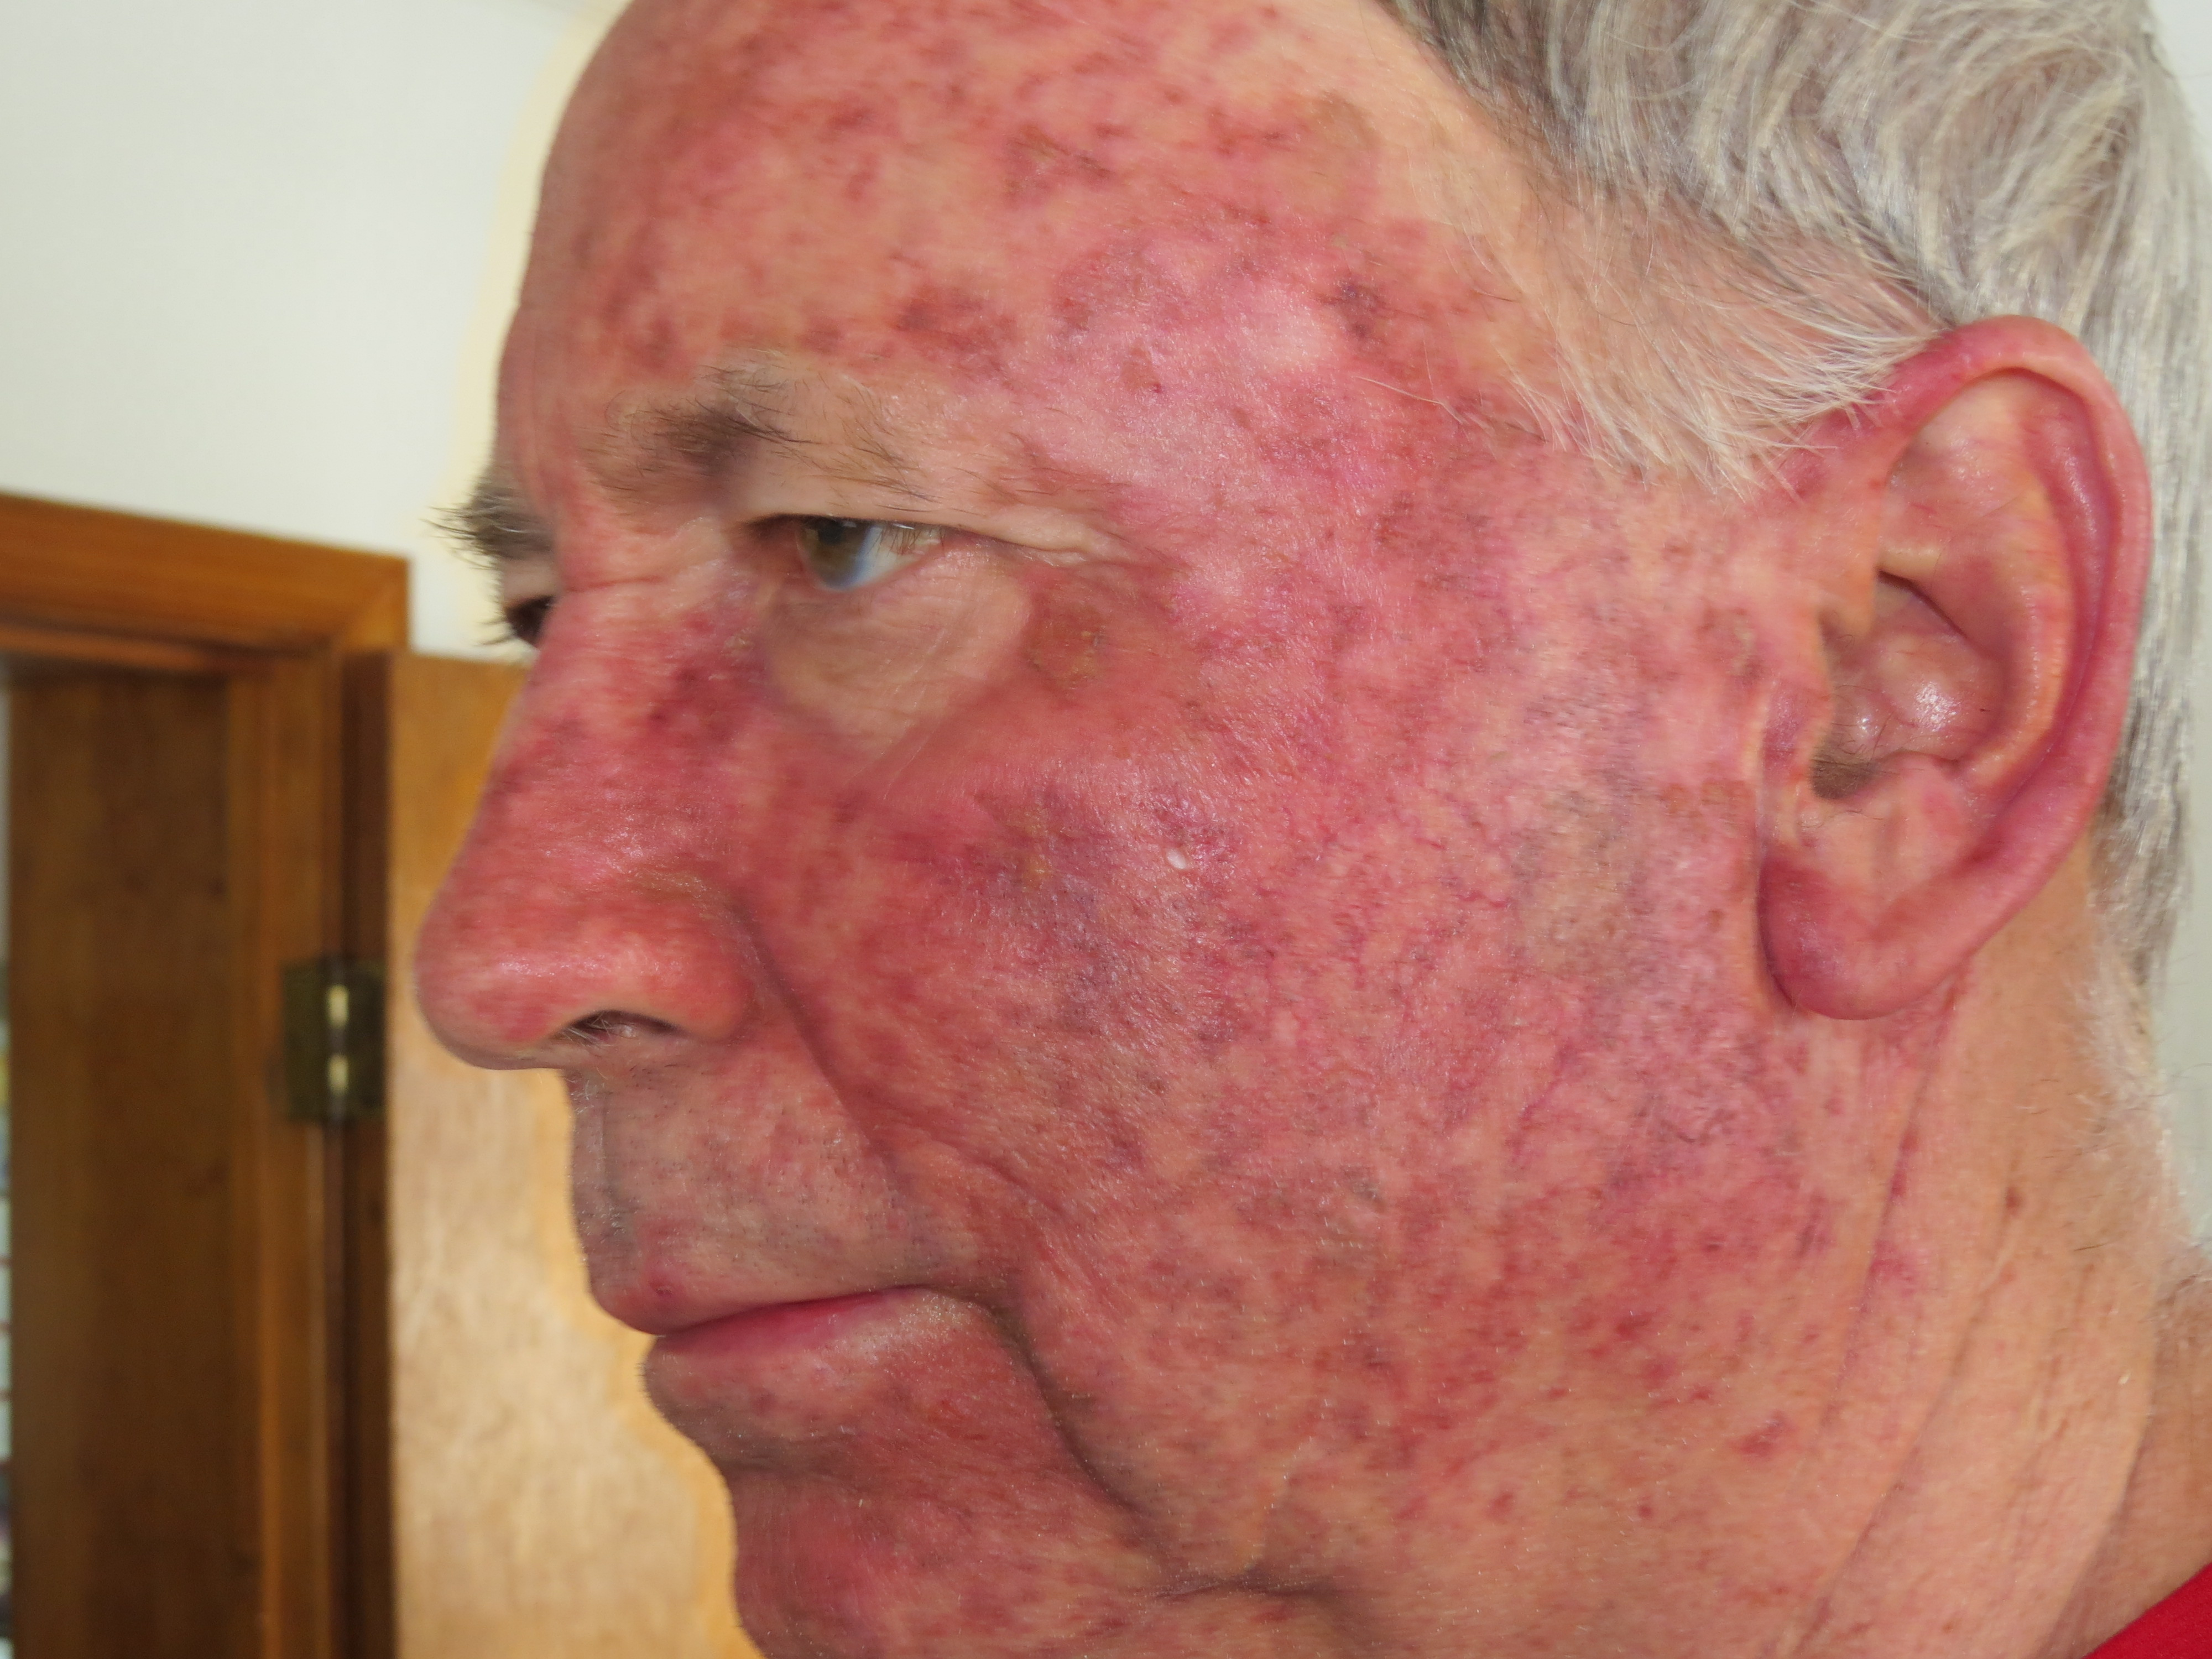 side effects of topical corticosteroid therapy